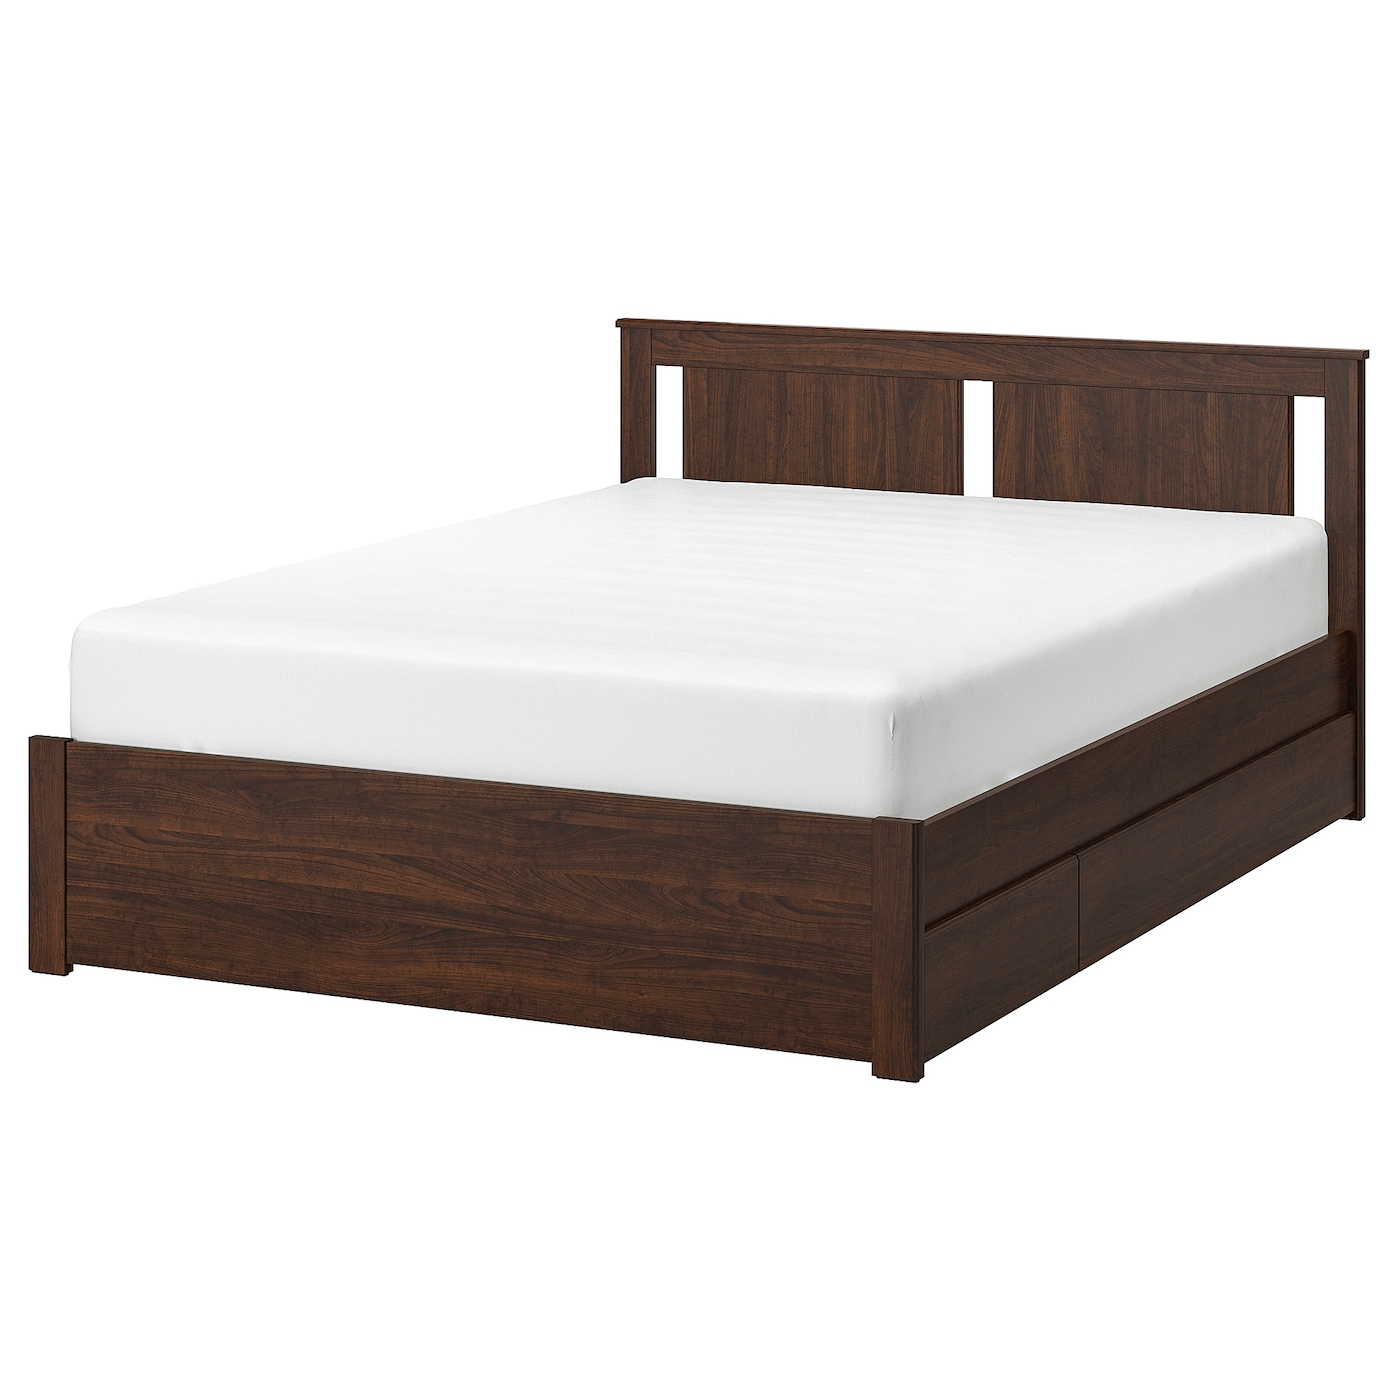 Songesand Bed Frame With 4 Storage Boxes Brown